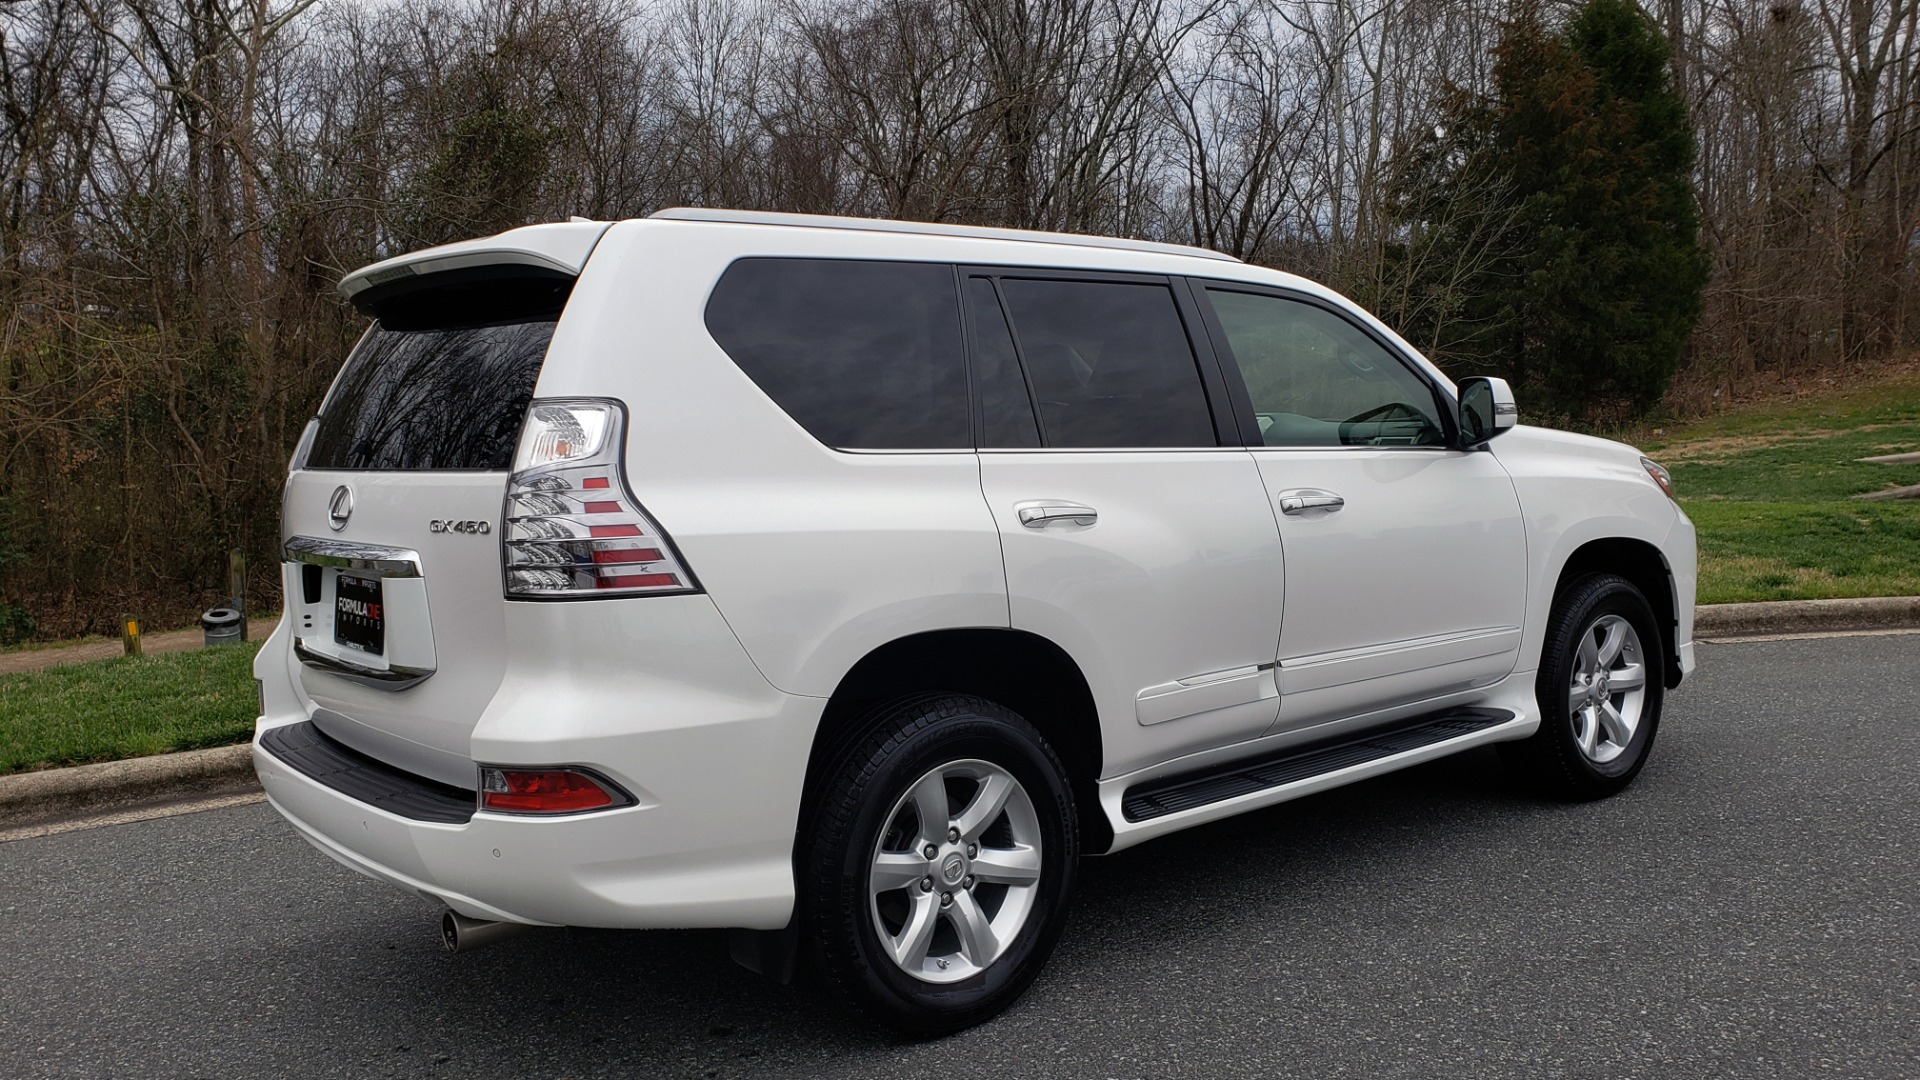 Used 2017 Lexus GX 460 4WD / NAV / VENT STS / SUNROOF / PARK ASST / BSM for sale Sold at Formula Imports in Charlotte NC 28227 6